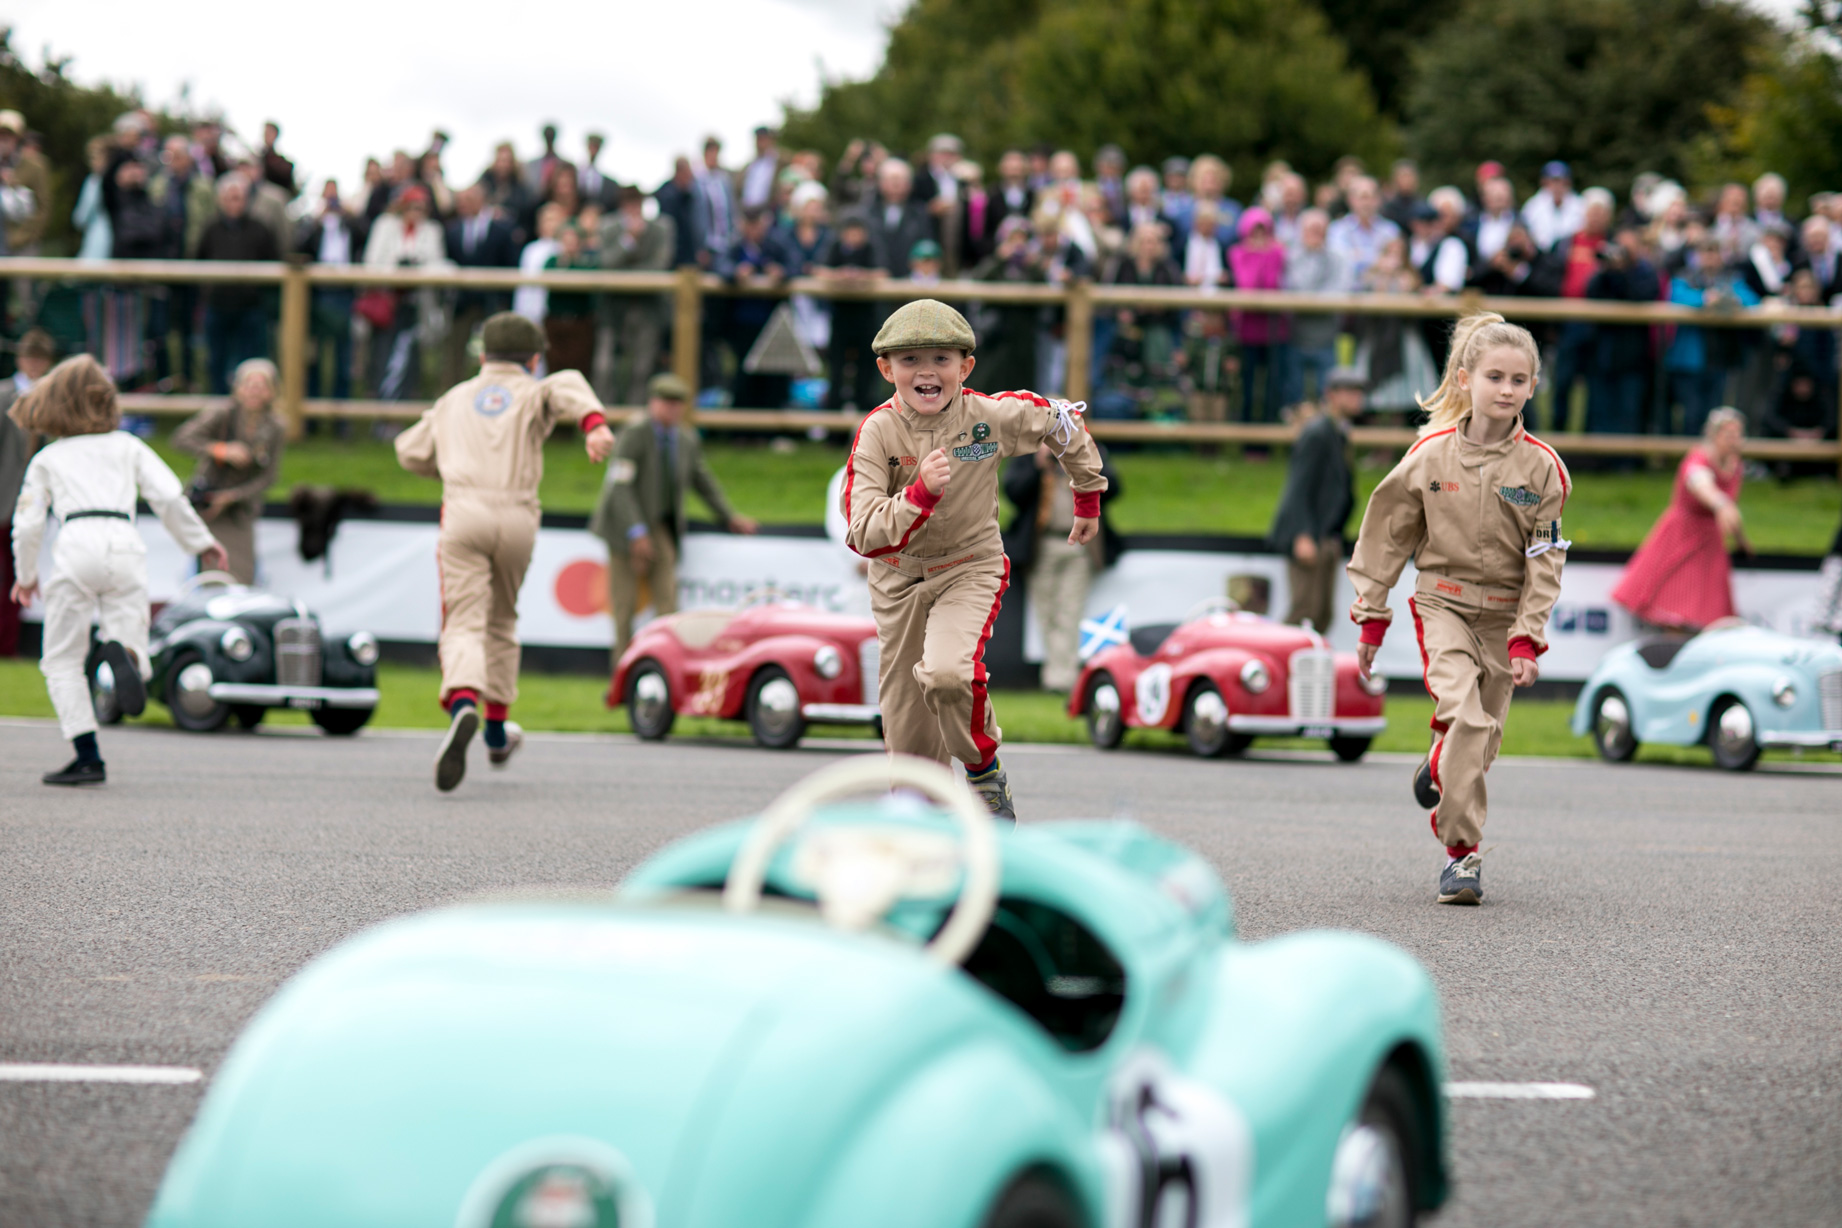 le mans start for the the peddle car race at Goodwood